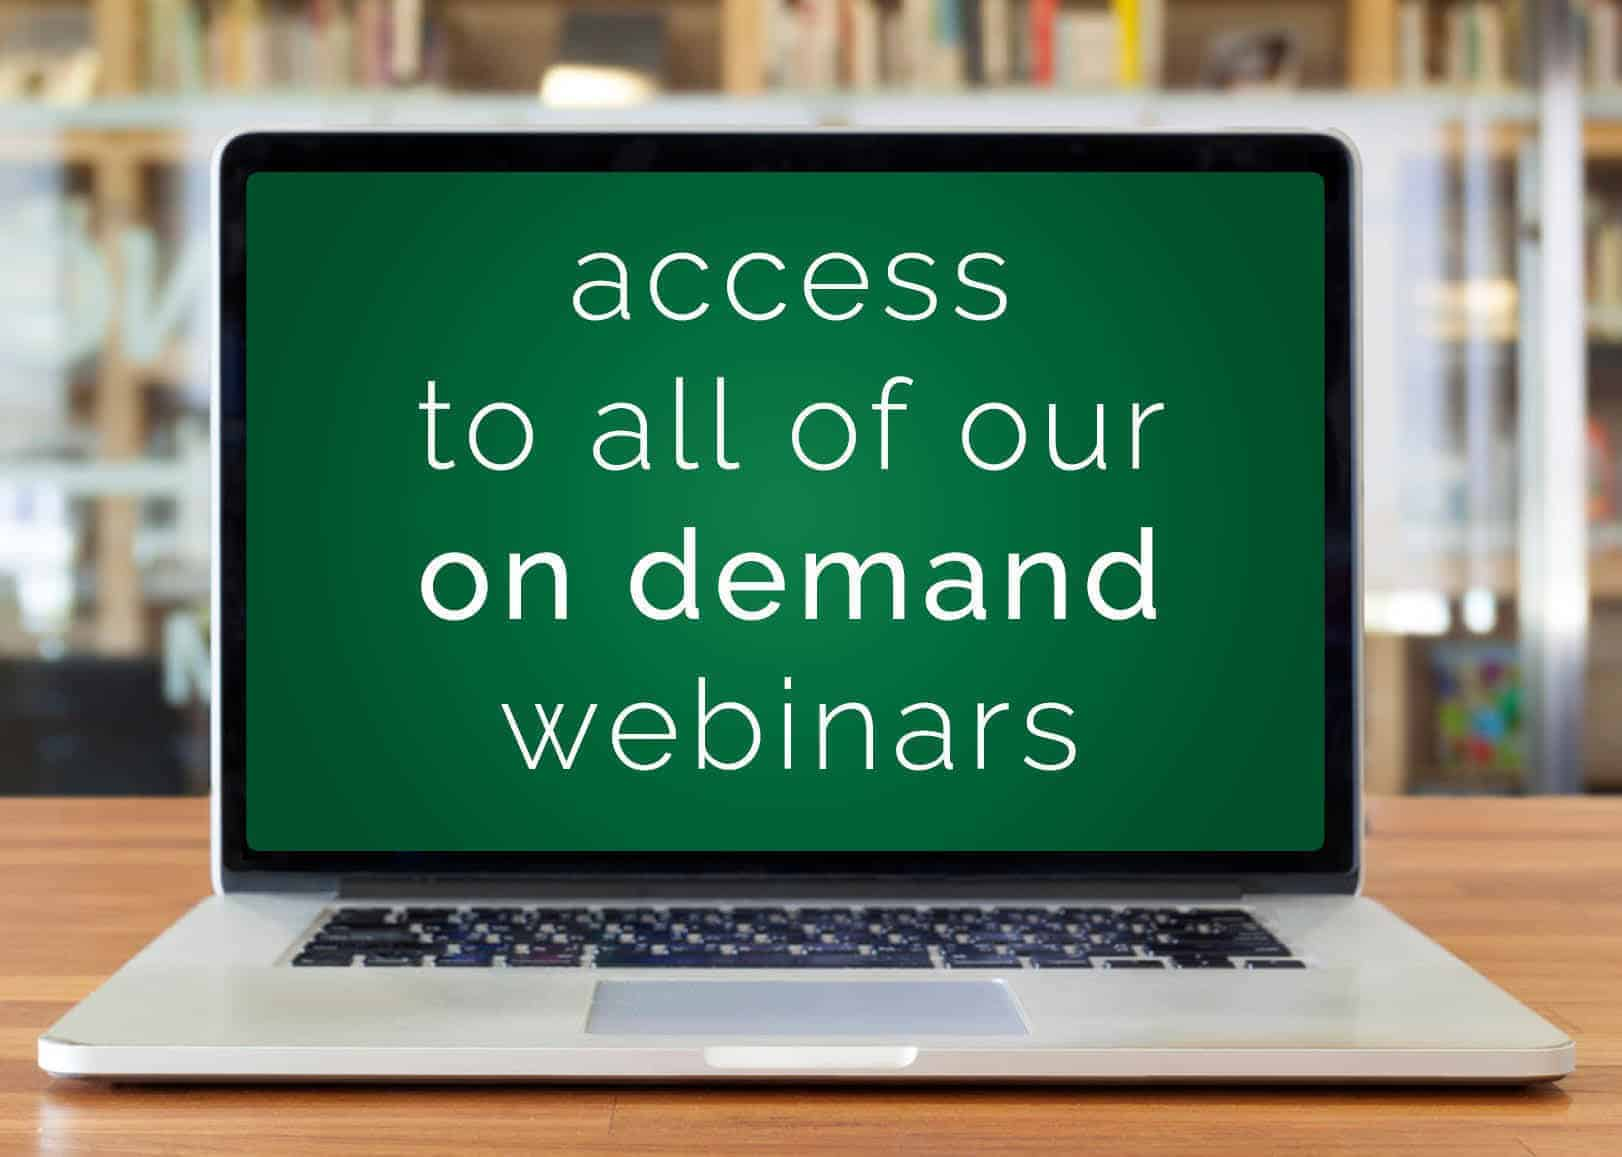 Photo of computer - Access all of our on demand webinars